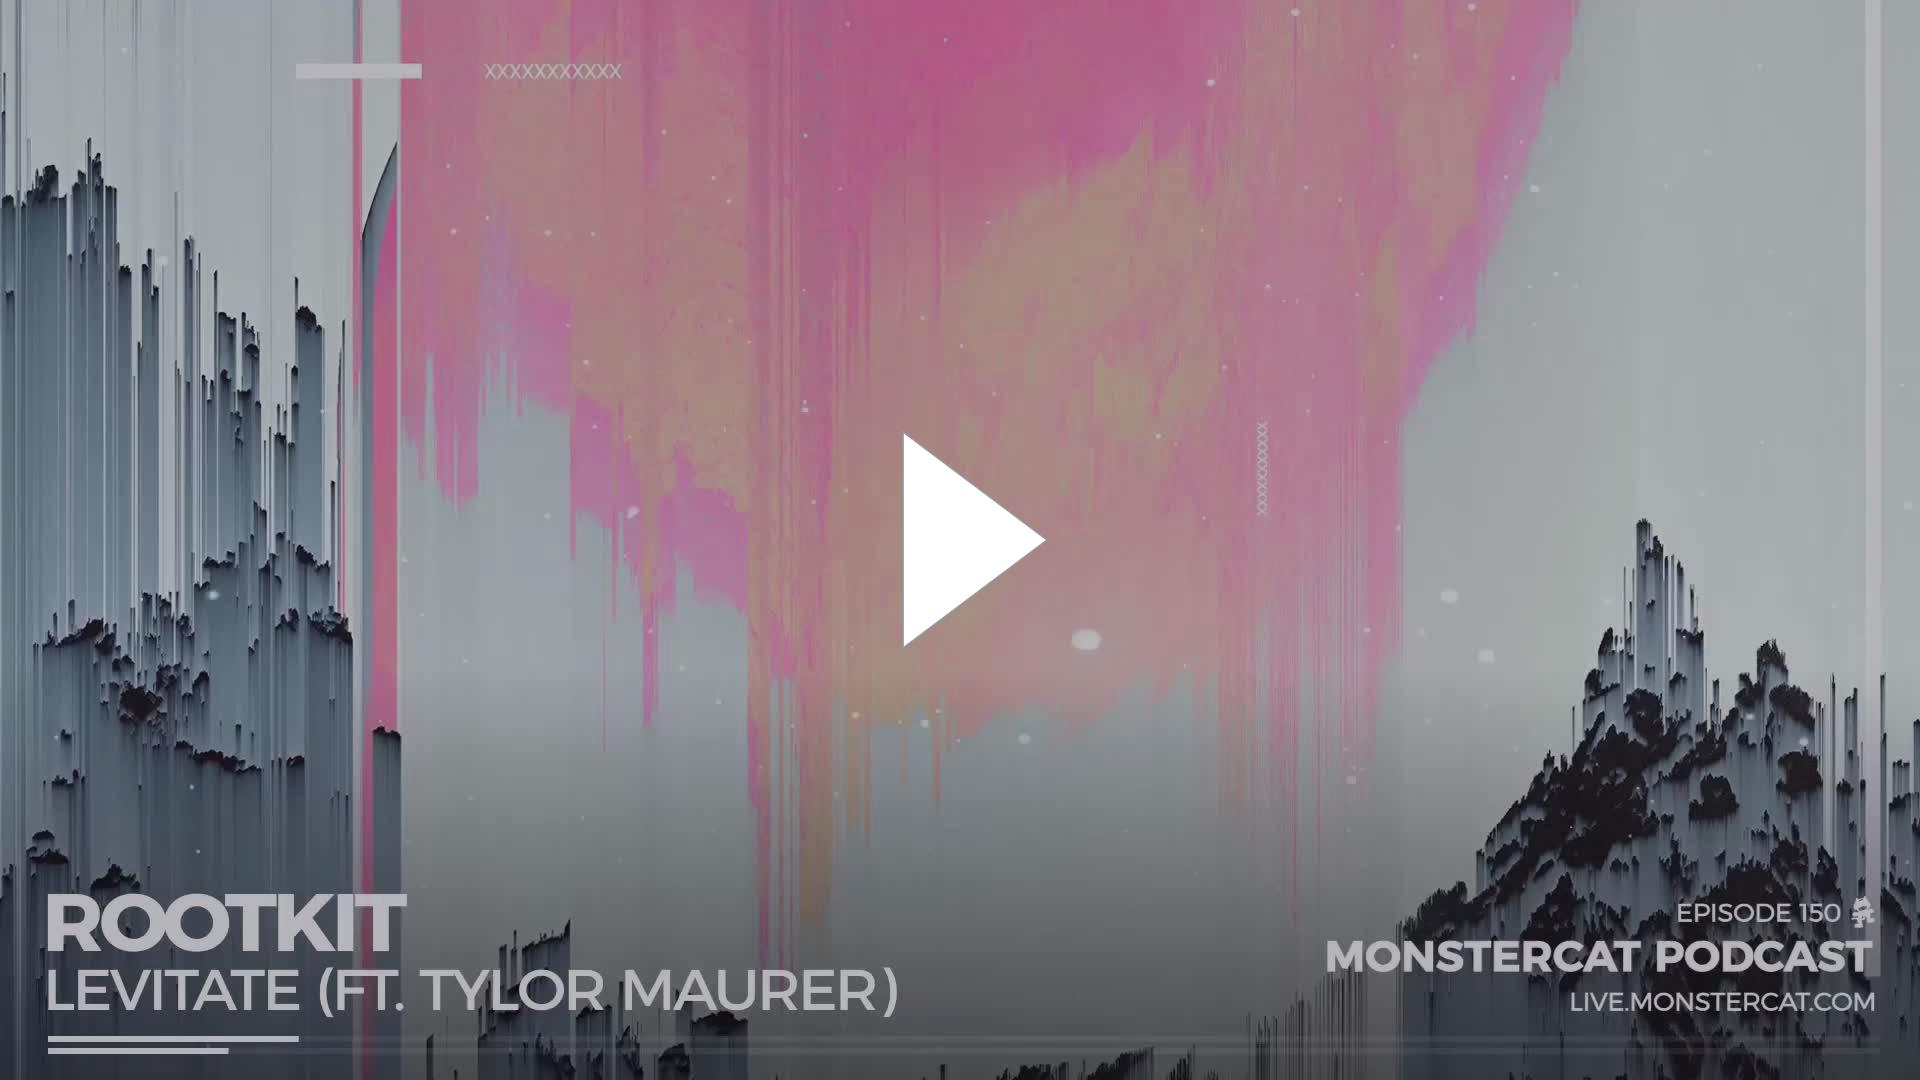 LIVE - Monstercat Podcast Ep  150 (Dirtyphonics Guest Mix